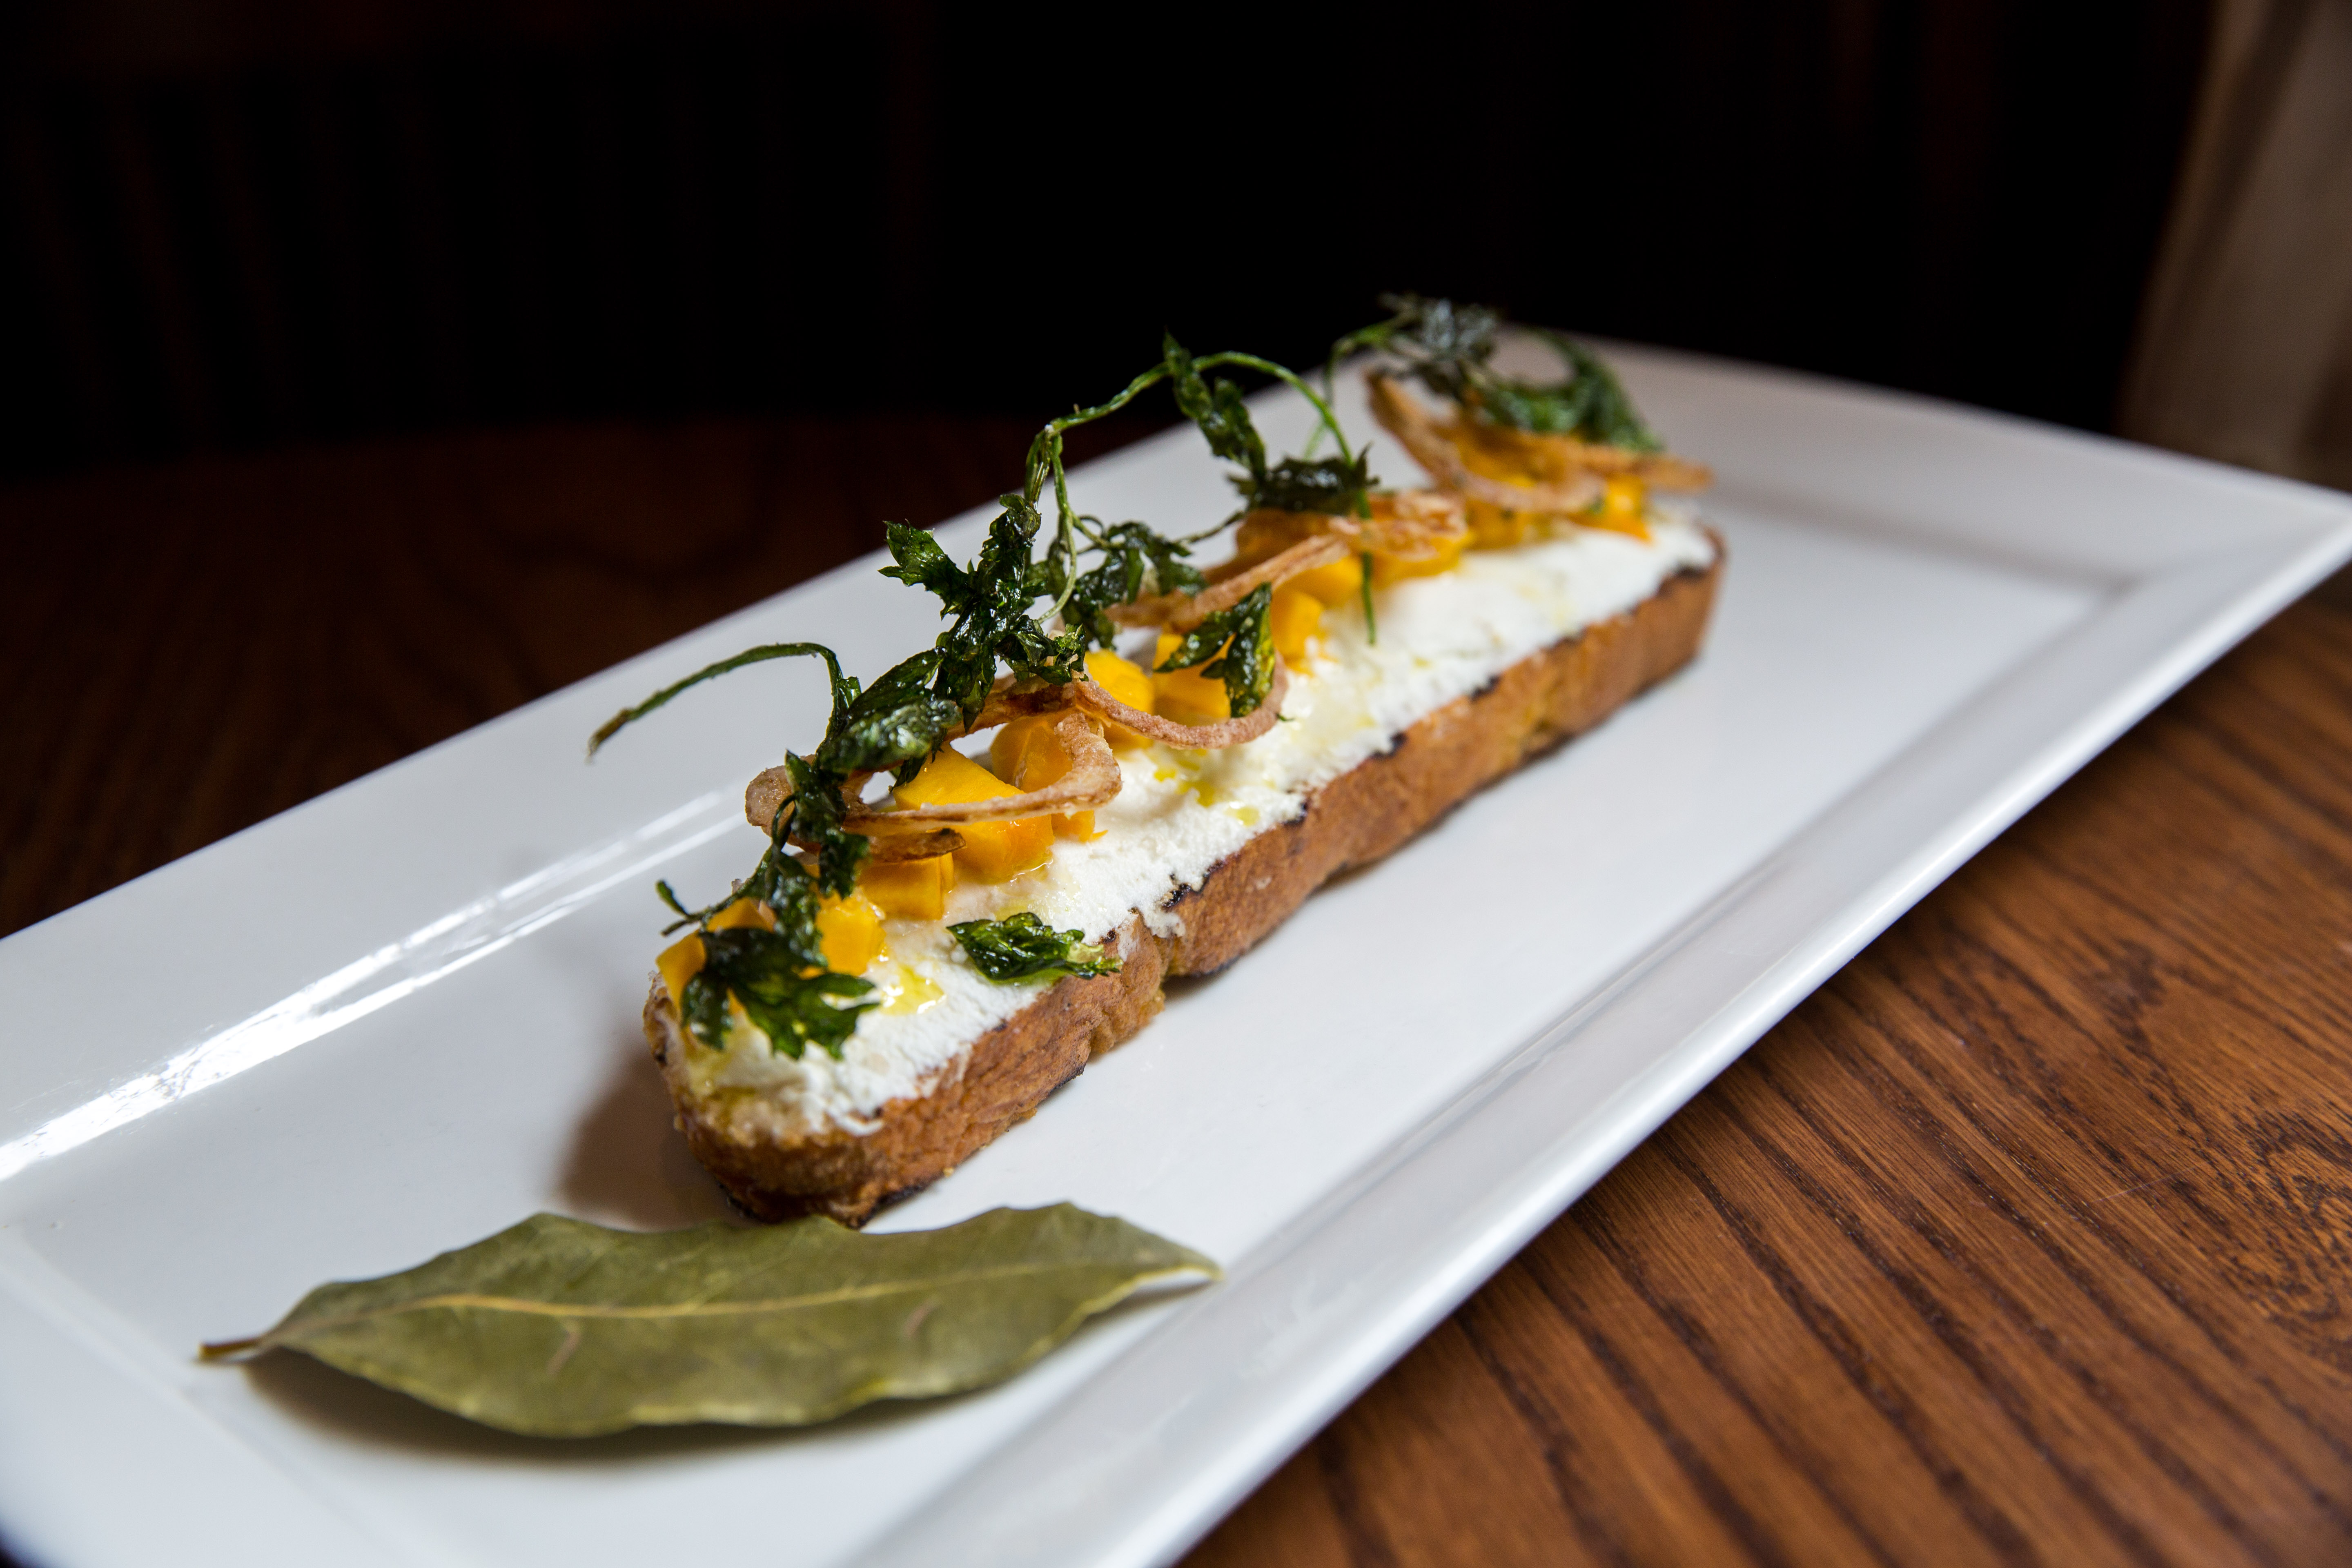 Pumpkin Bruschetta, grilled ciabatta goat cheese, sweet & sour pumpkin fried shallots, parsley.{ } You can find these amazing pumpkin items at Tulio until October 31! (Image: Adela Lee).